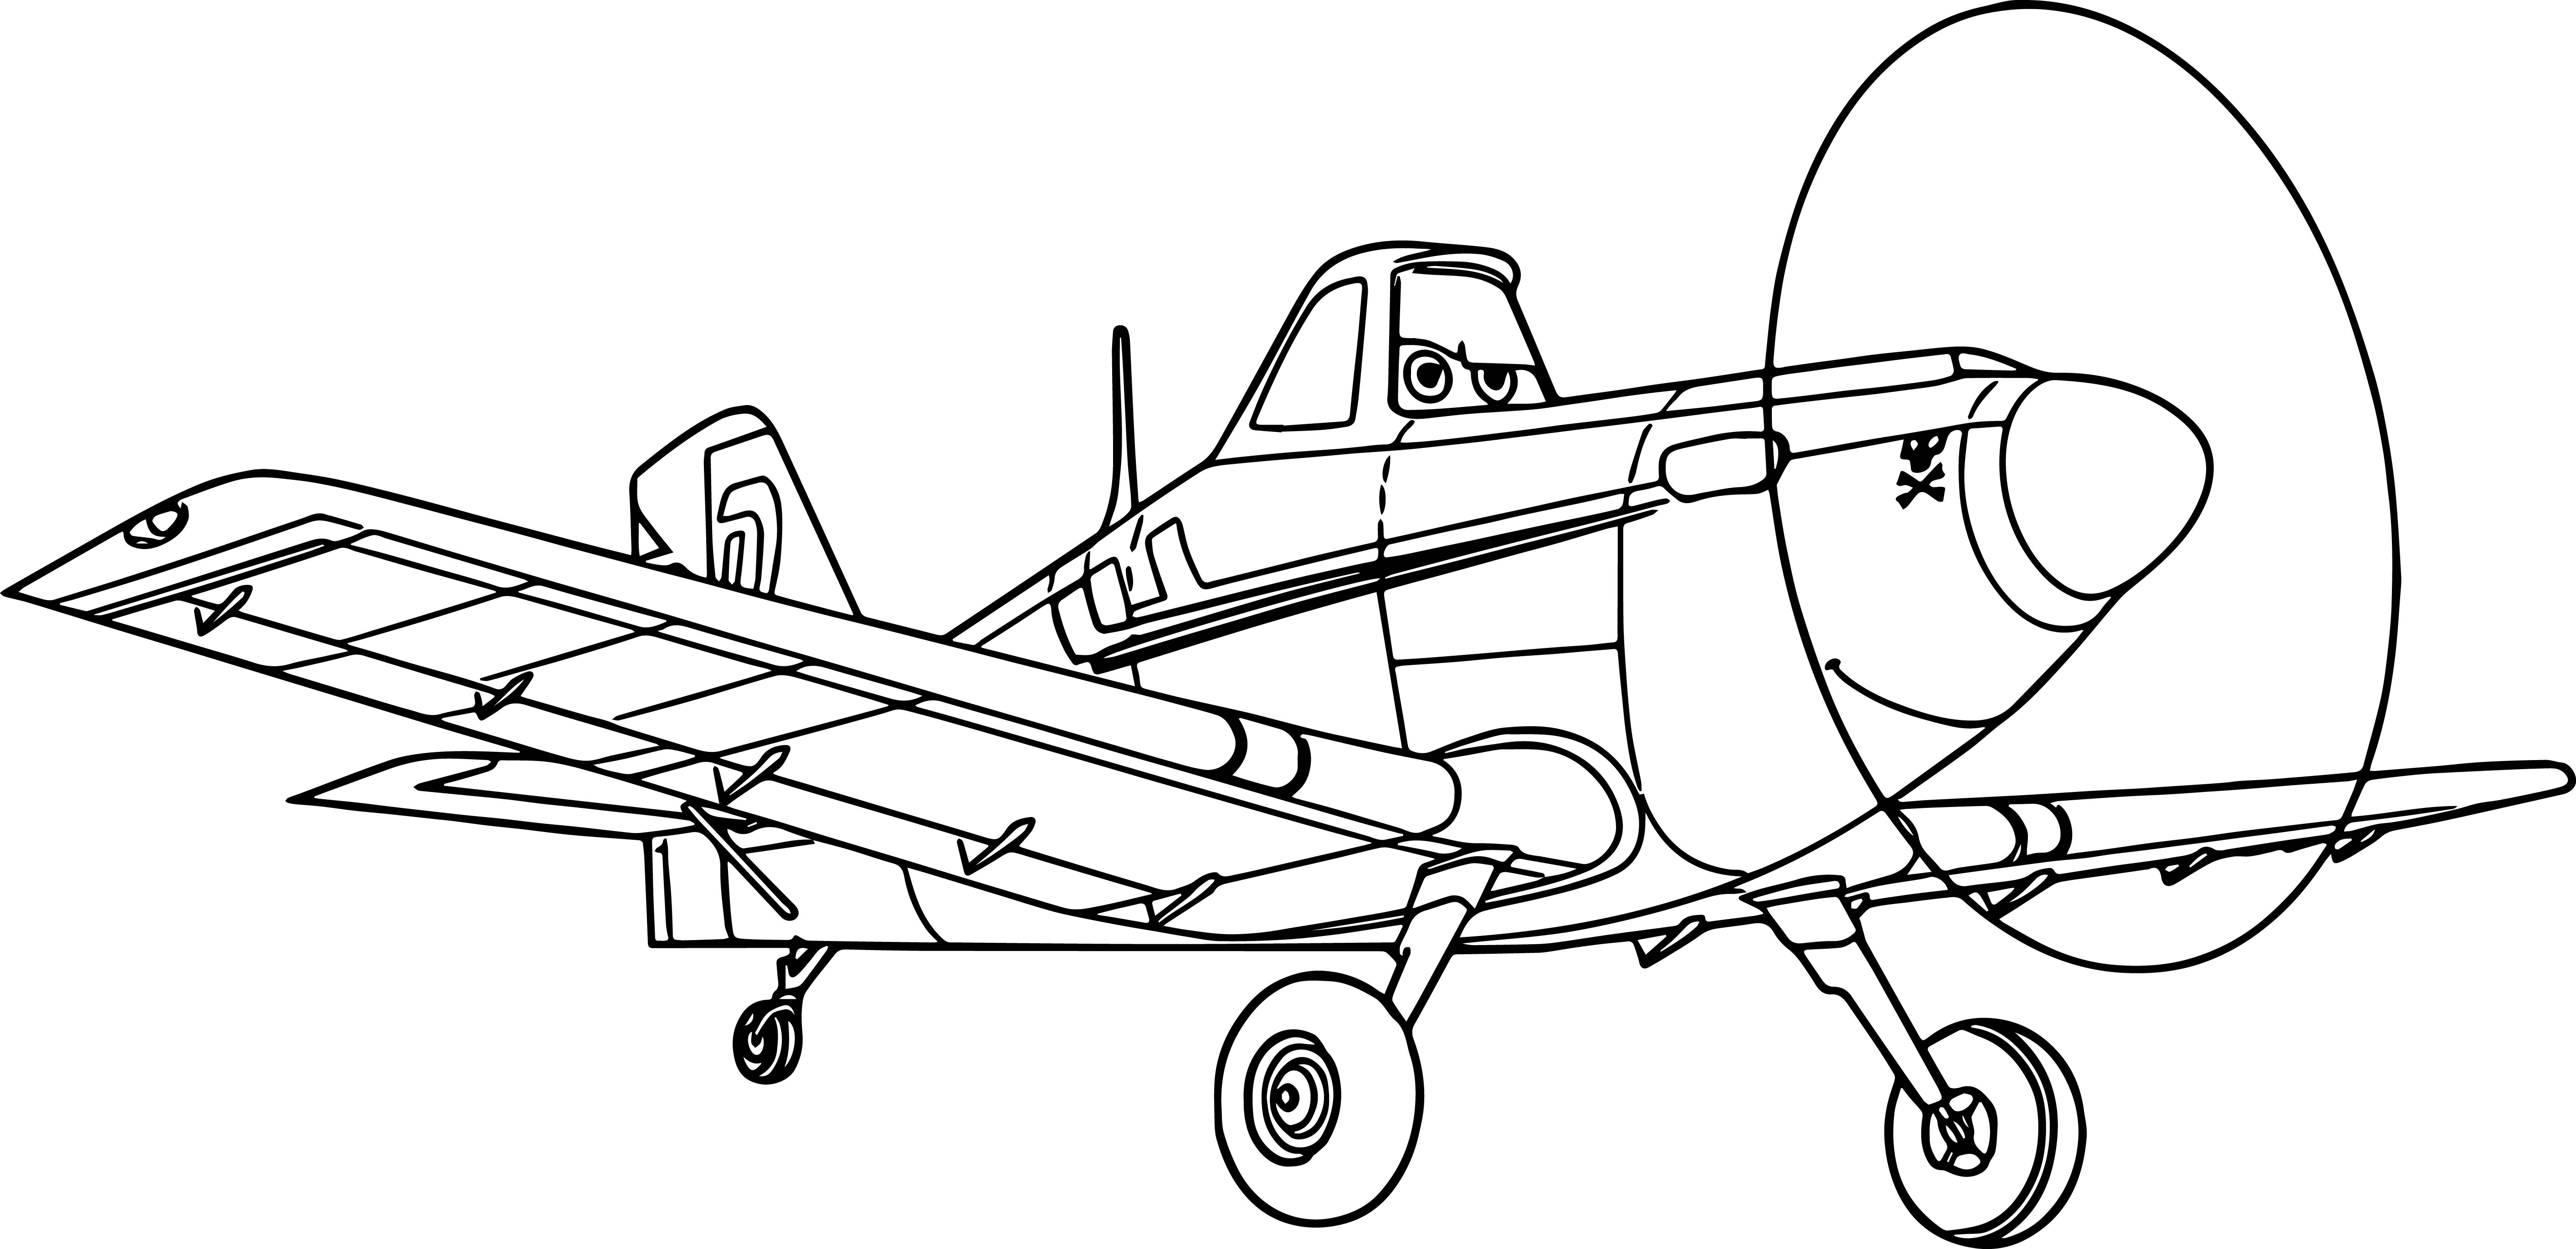 Ww2 Airplane Coloring Pages at GetDrawings | Free download